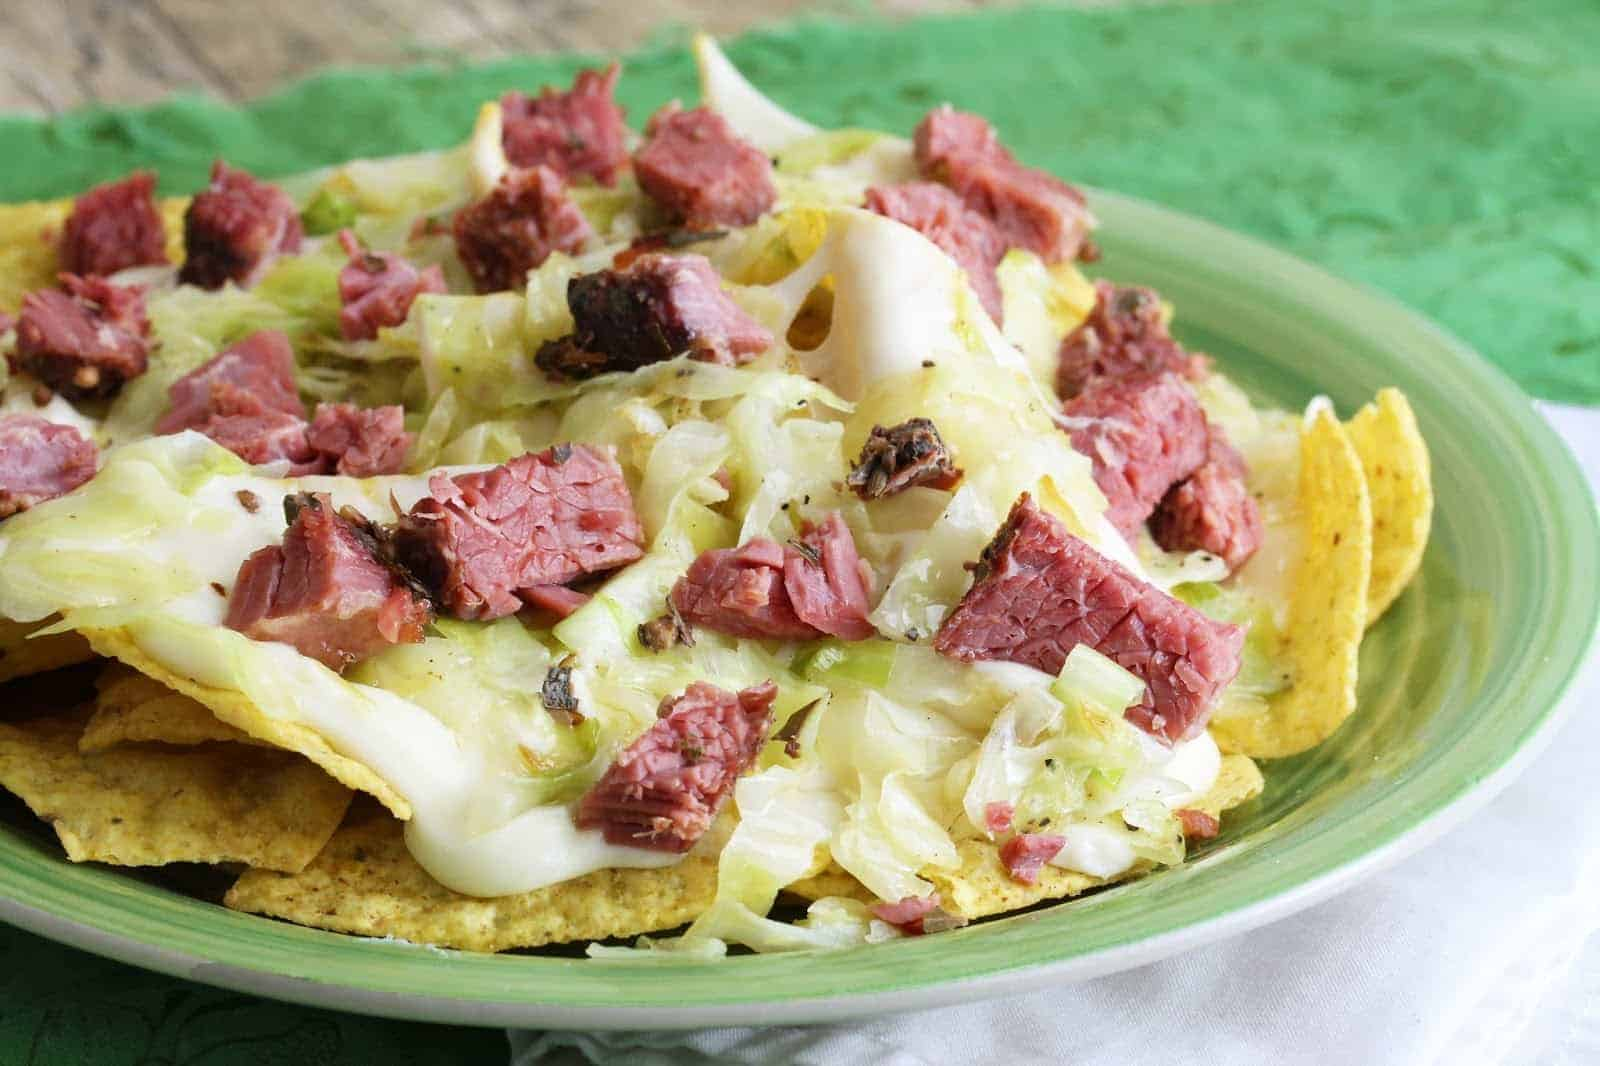 Close up of Corned beef and cabbage nachos on a green plate.